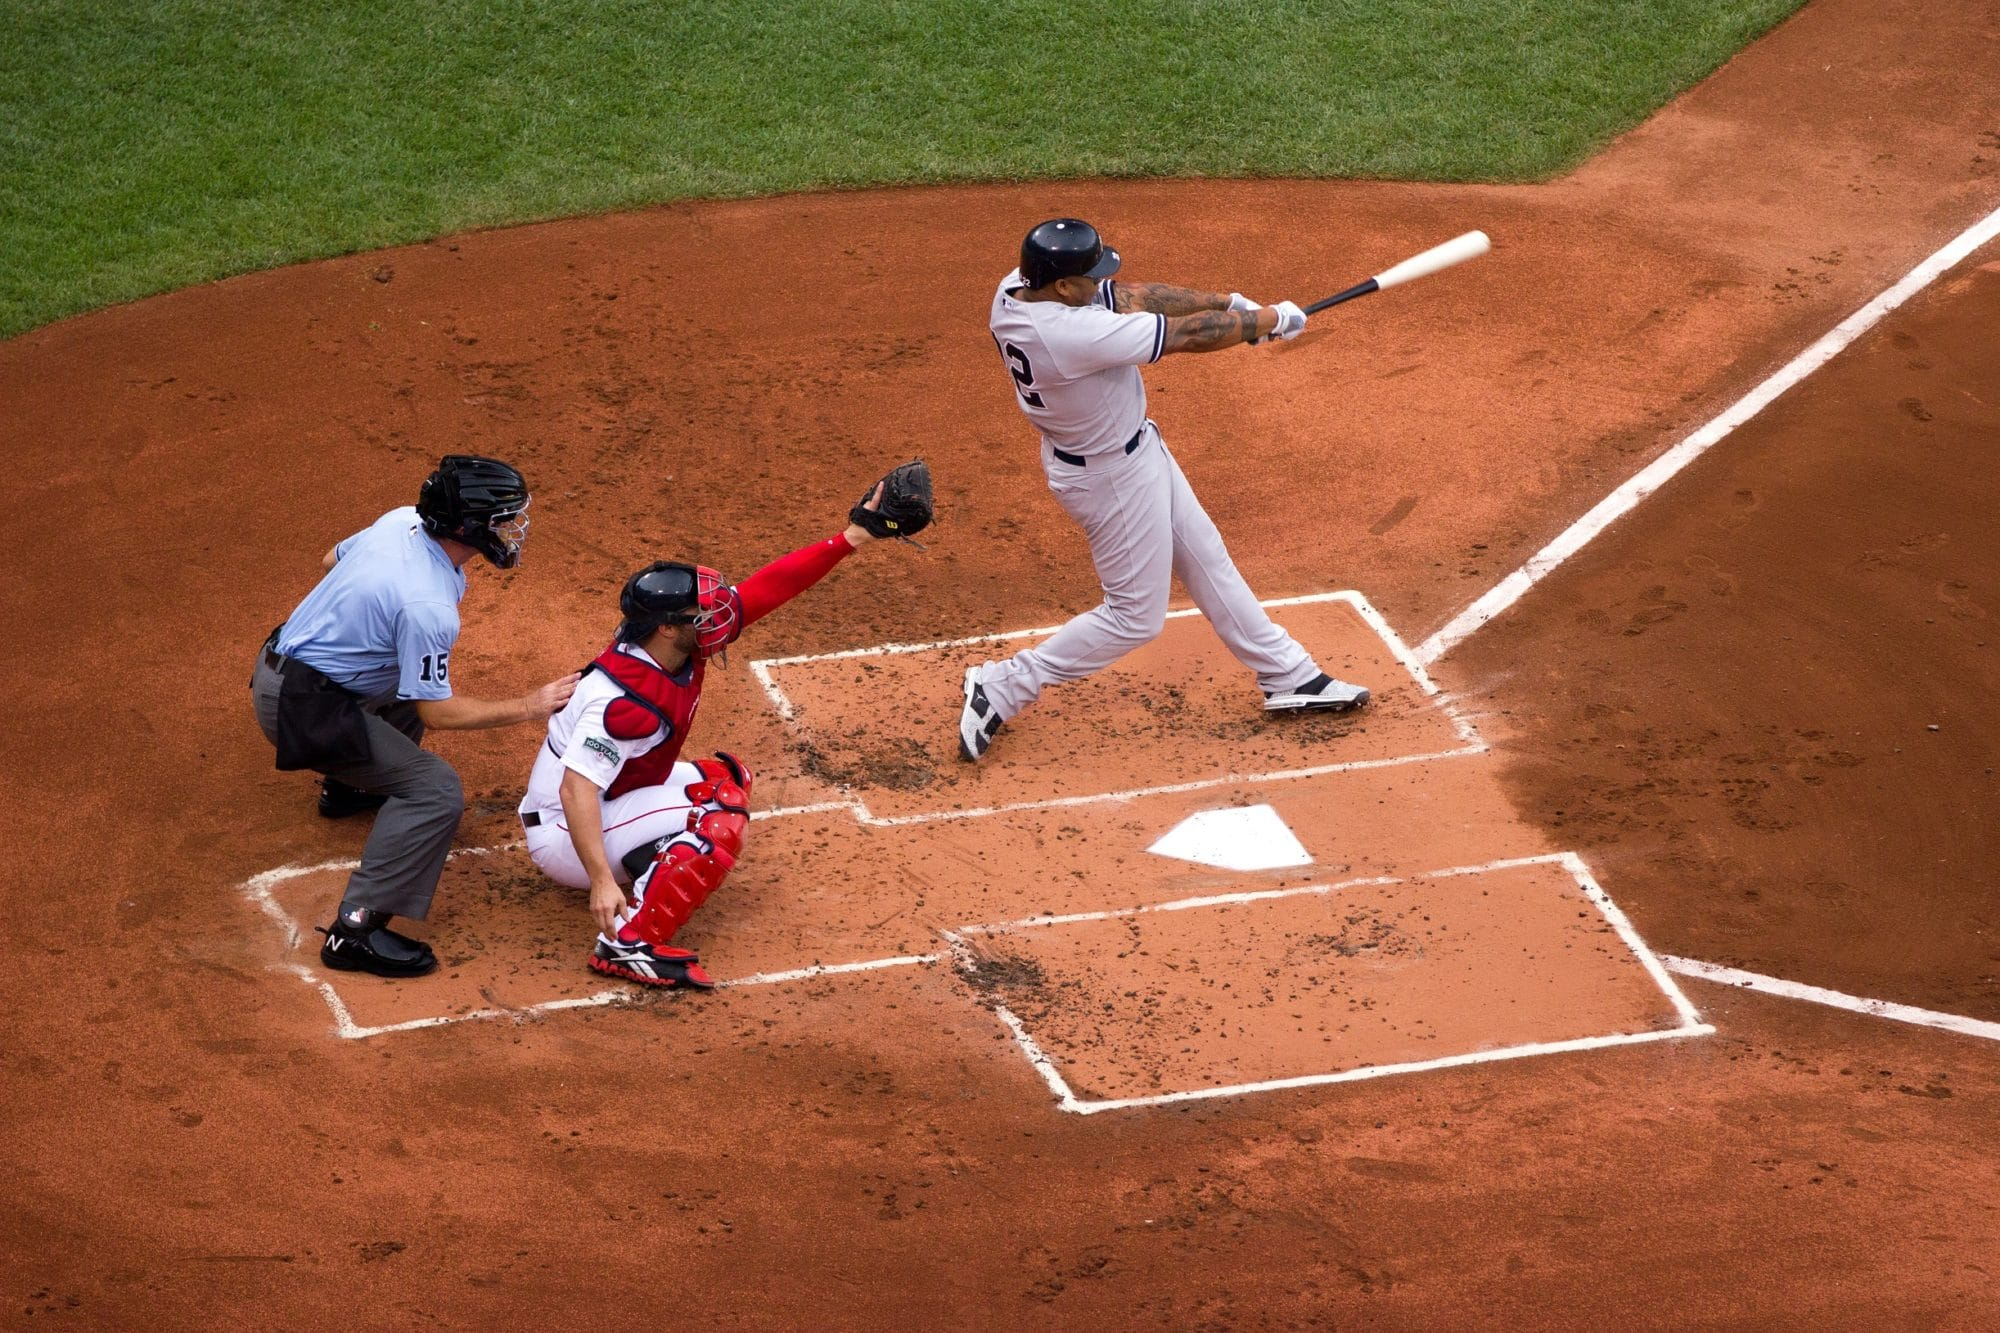 Hitting it Out of the Park with Deep Learning | NVIDIA Blog